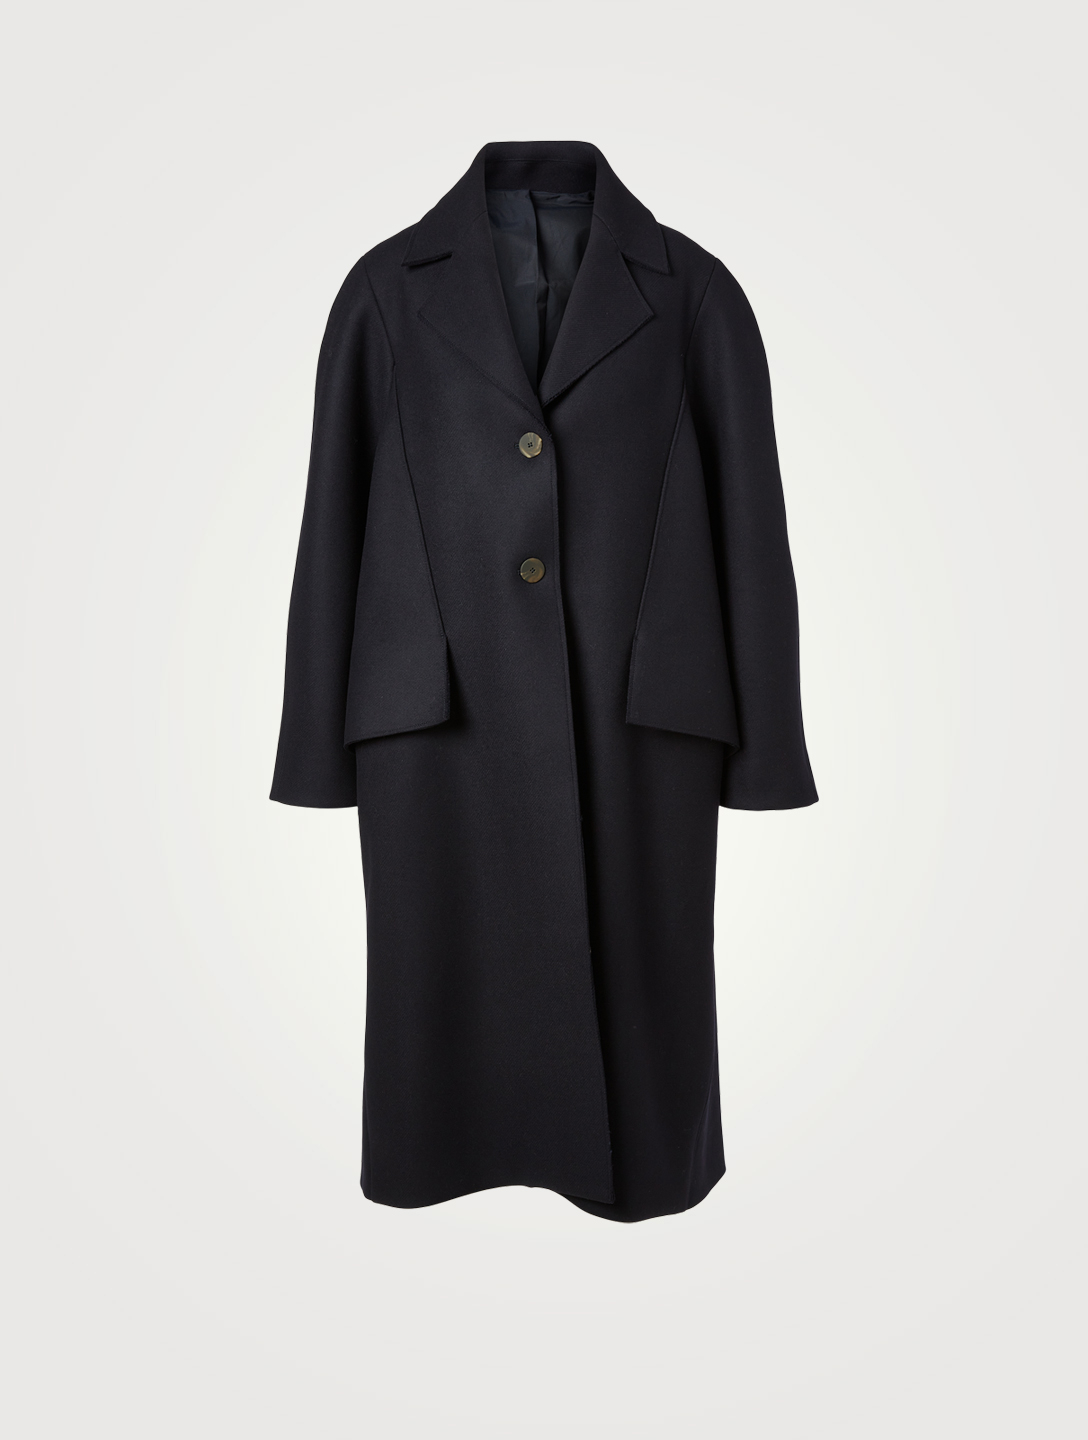 STUDIO NICHOLSON Christensen Wool-Blend Oversized Coat Women's Blue